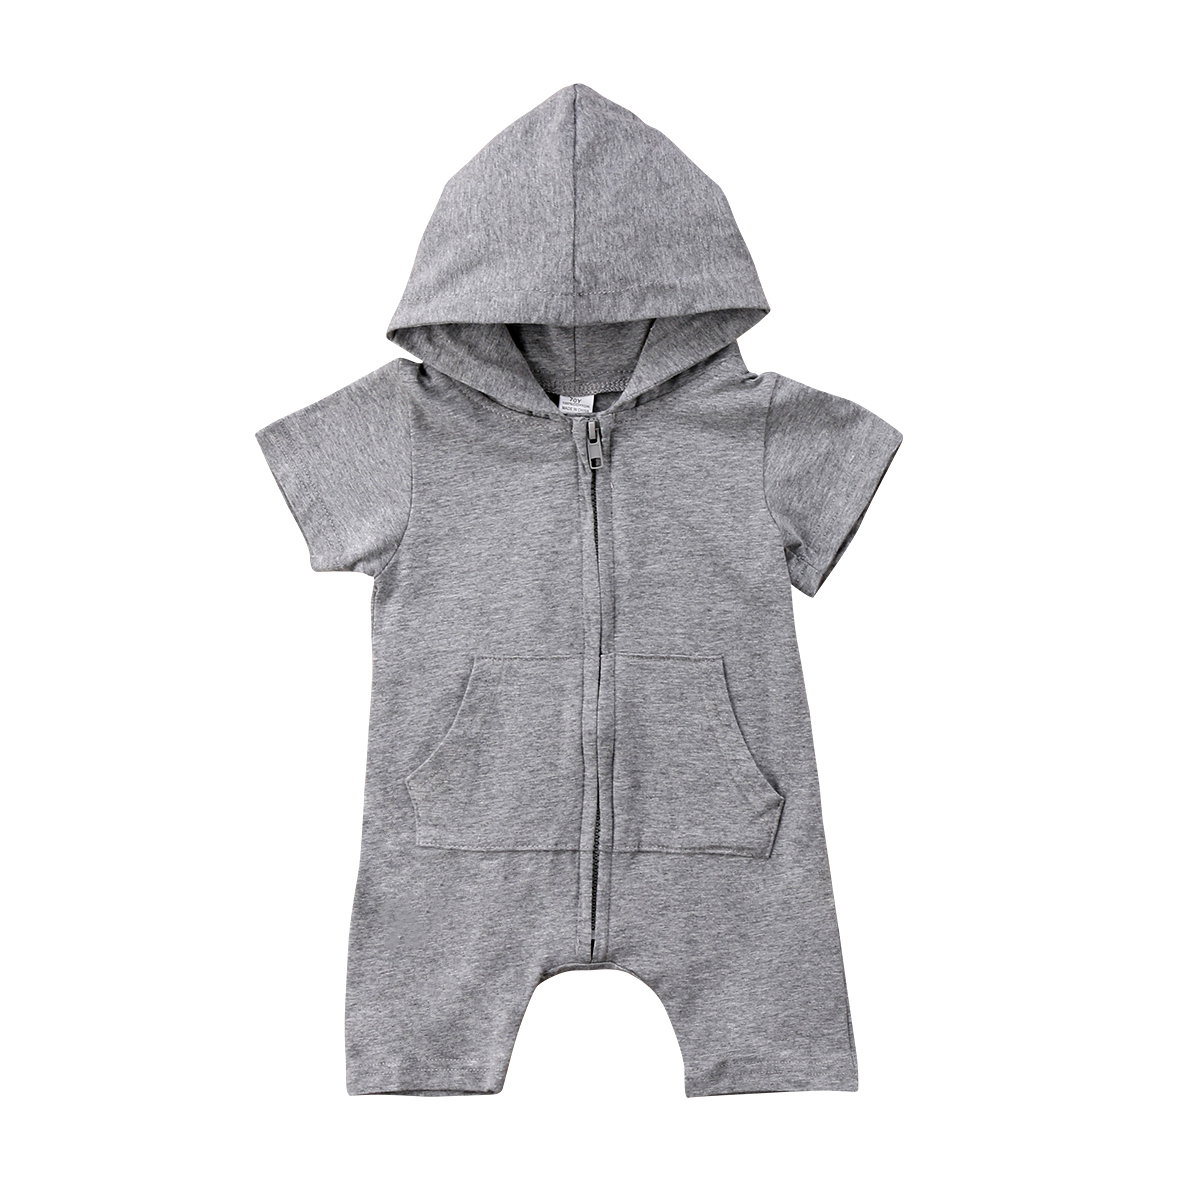 Toddler Infant Kids Baby Rompers Boy Girl Zipper Romper Jumpsuit Short Sleeve Hooded Baby Clothes Summer Outfit baby girl 1st birthday outfits short sleeve infant clothing sets lace romper dress headband shoe toddler tutu set baby s clothes